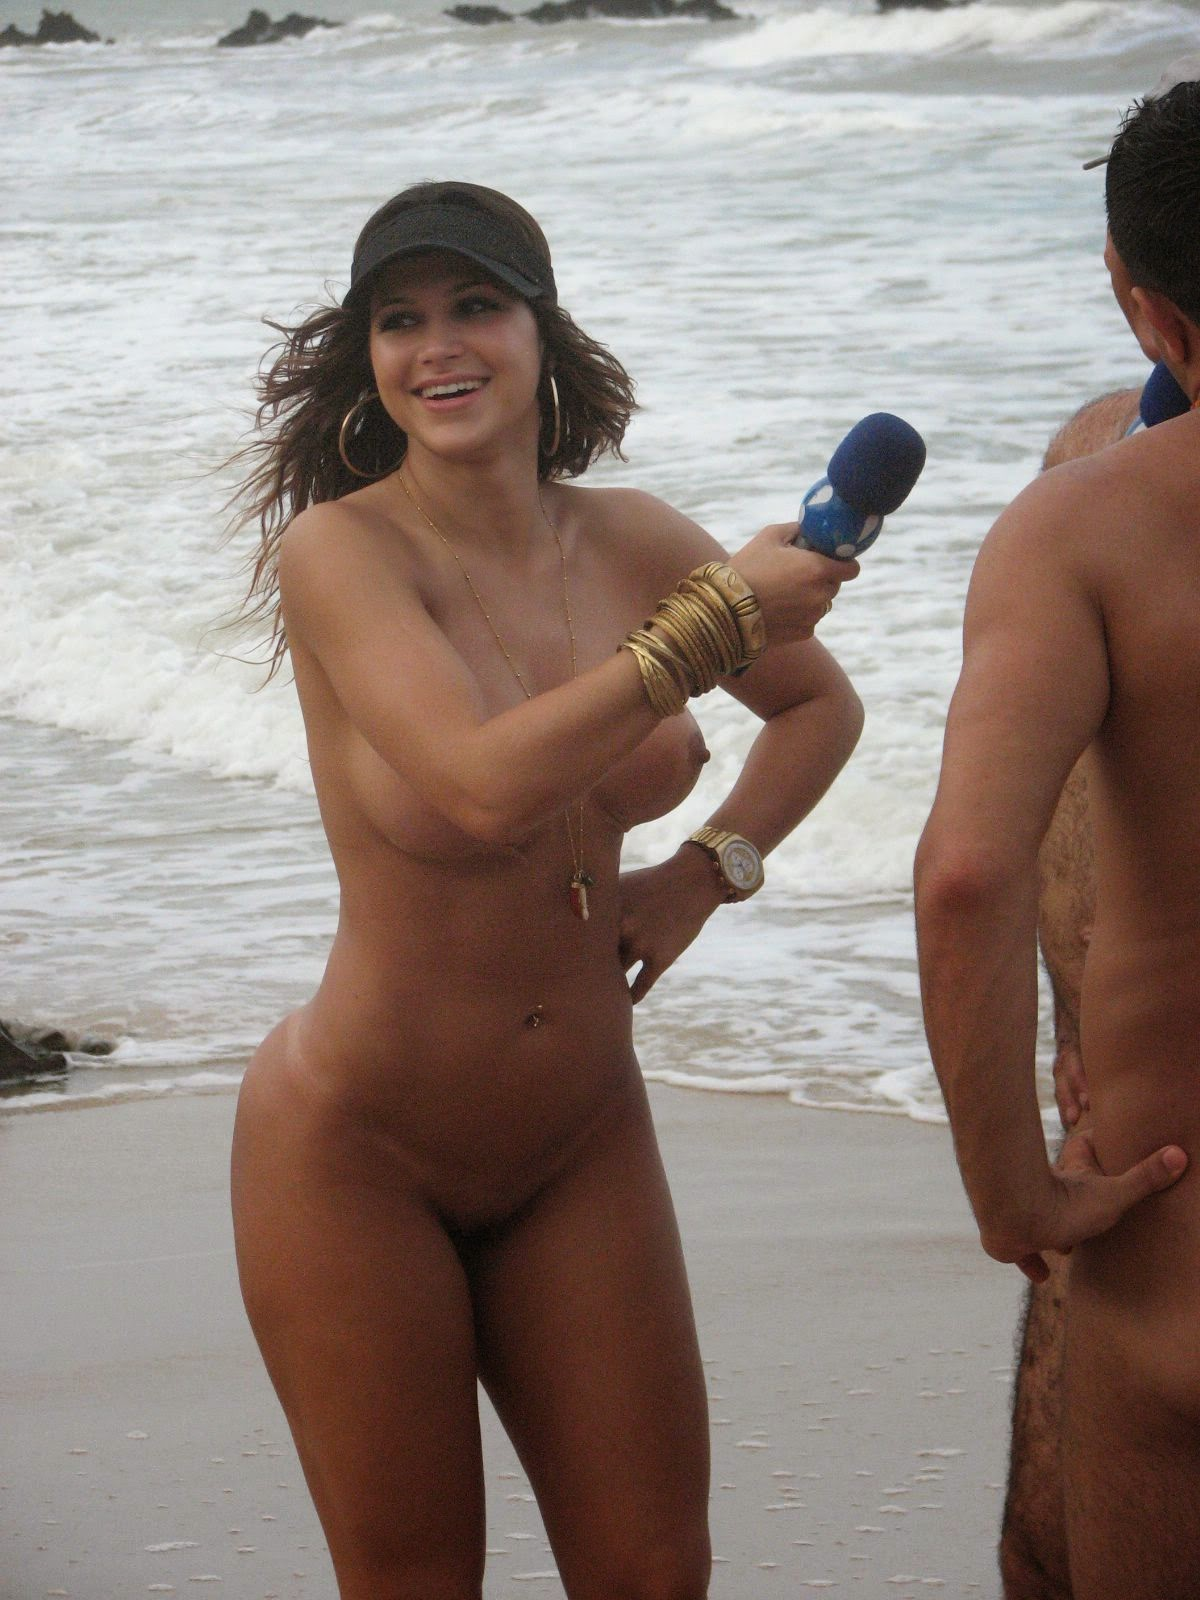 Excellent Brazil hot women nude beach very